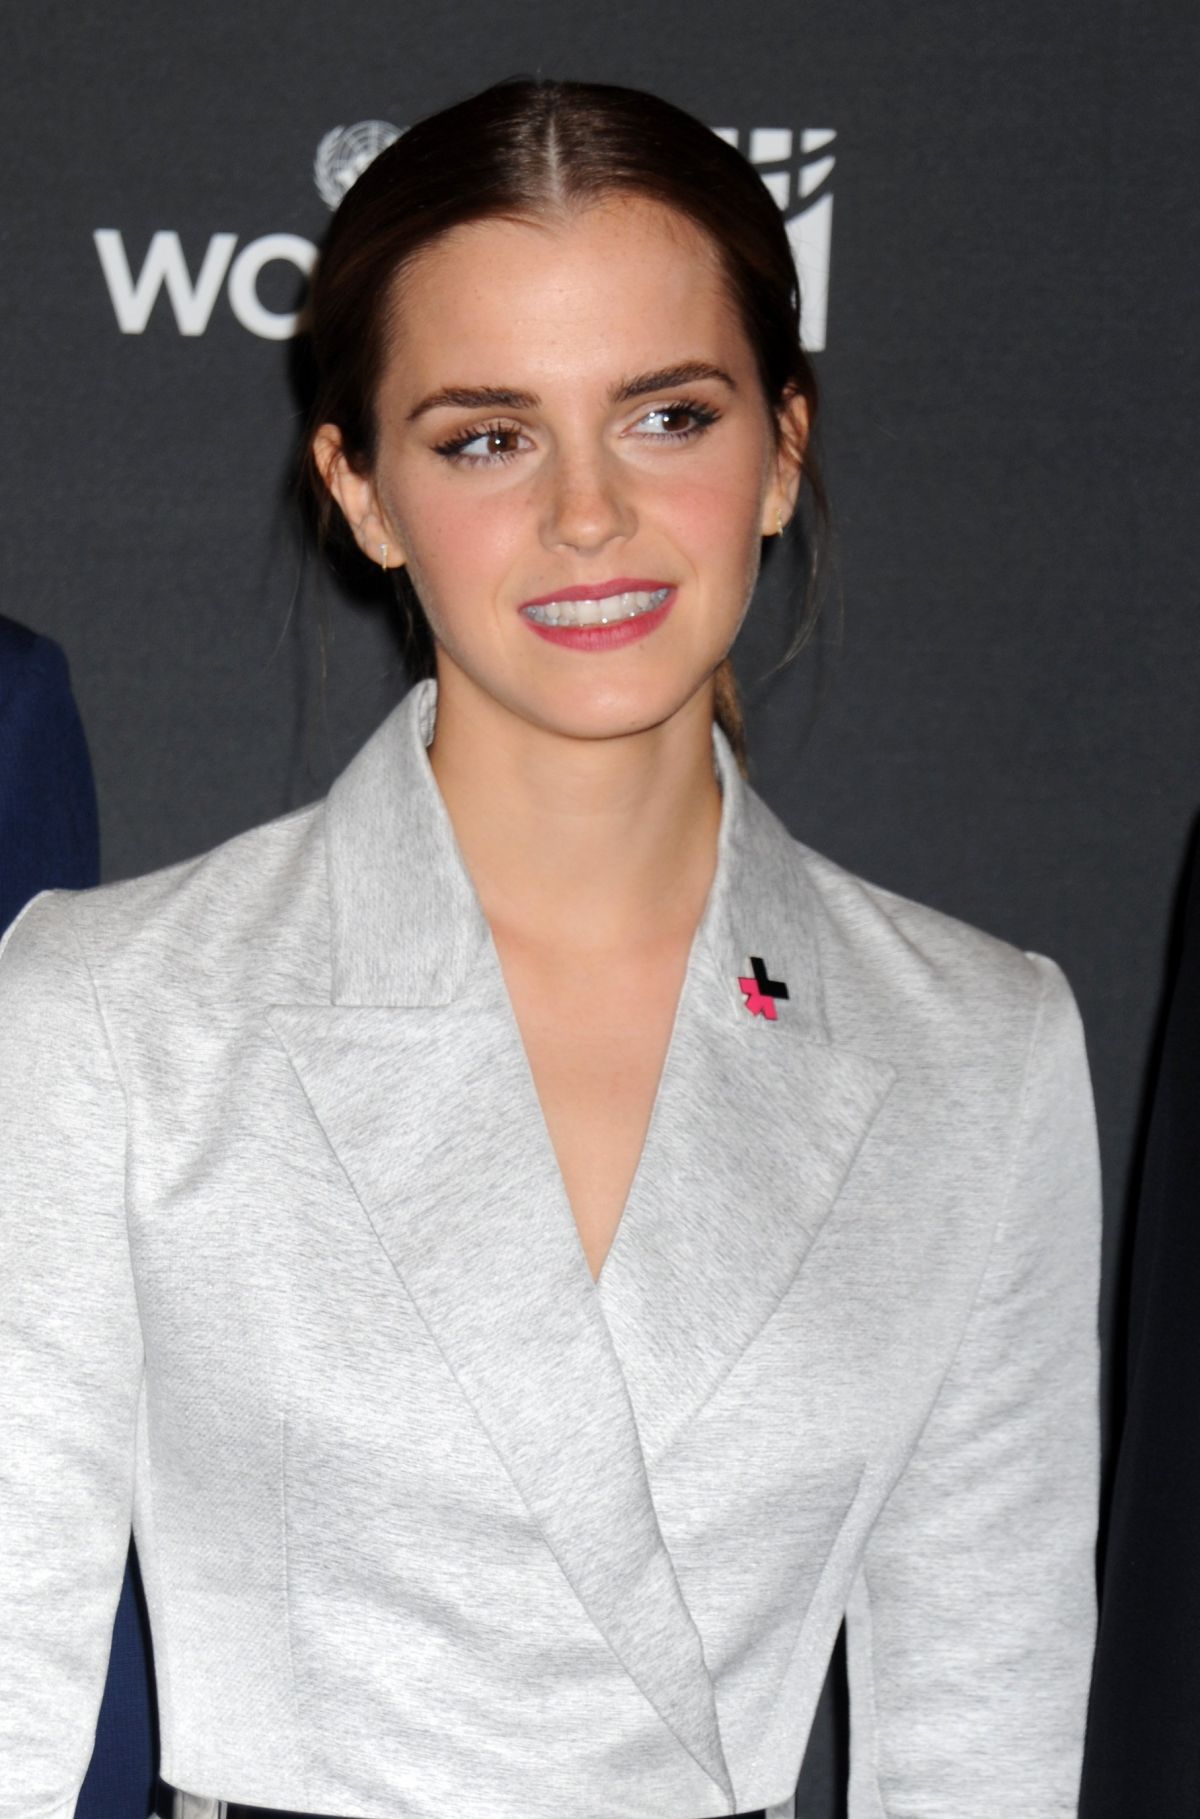 emma-watson-at-heforshe-campaign-launch-at-the-united-nations-in-new-york_1